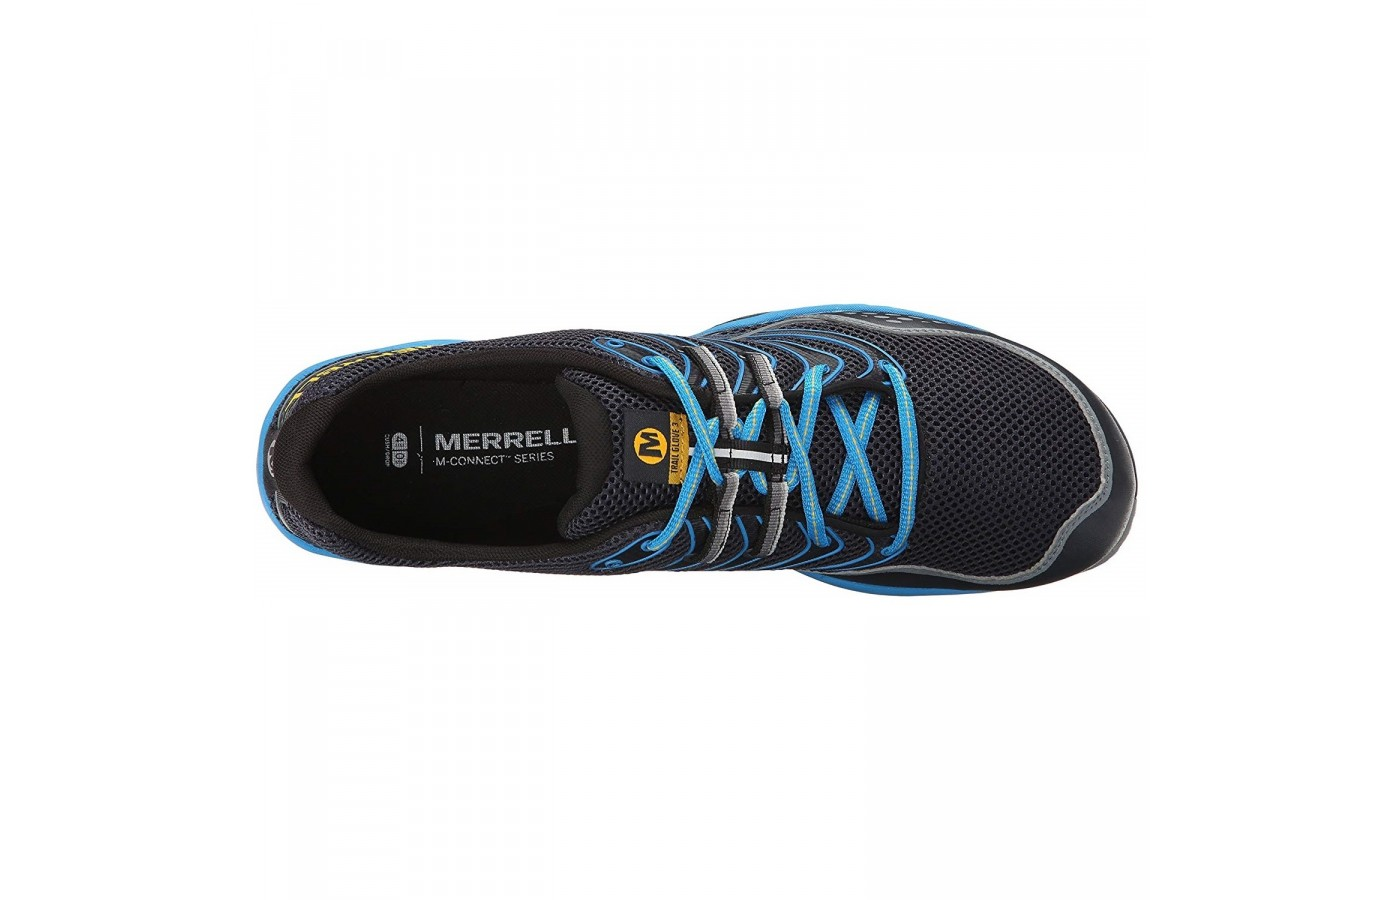 The Merrell Trail Glove 3 offers an Omni-Fit lacing system in order to provide a closer, more precise fit to the foot.